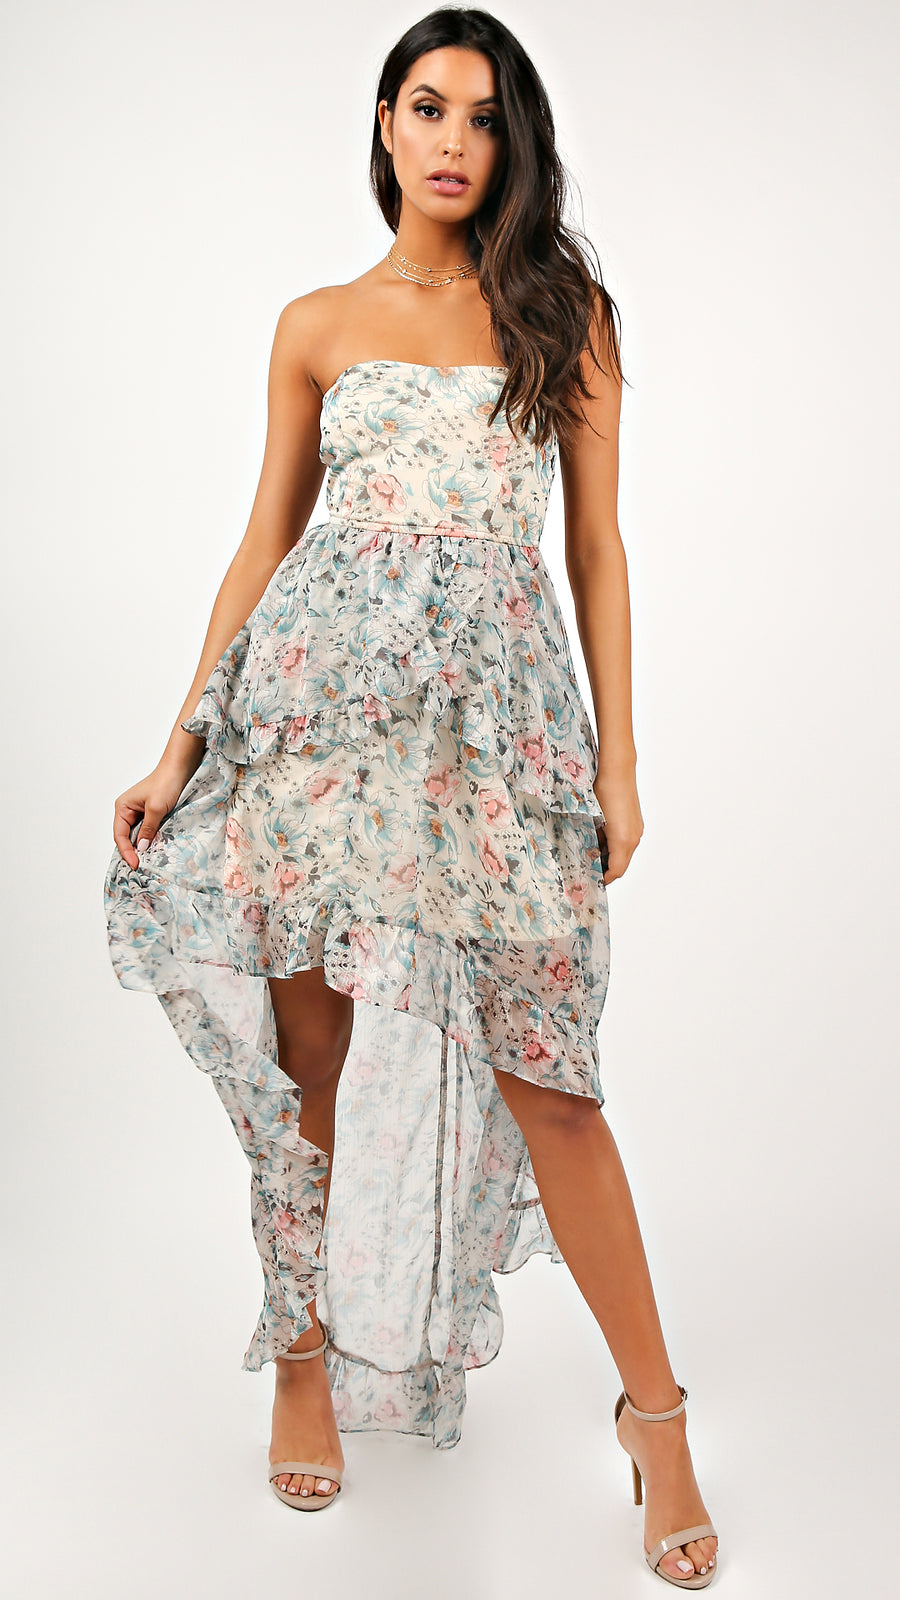 Skye Floral High Low Ruffle Dress